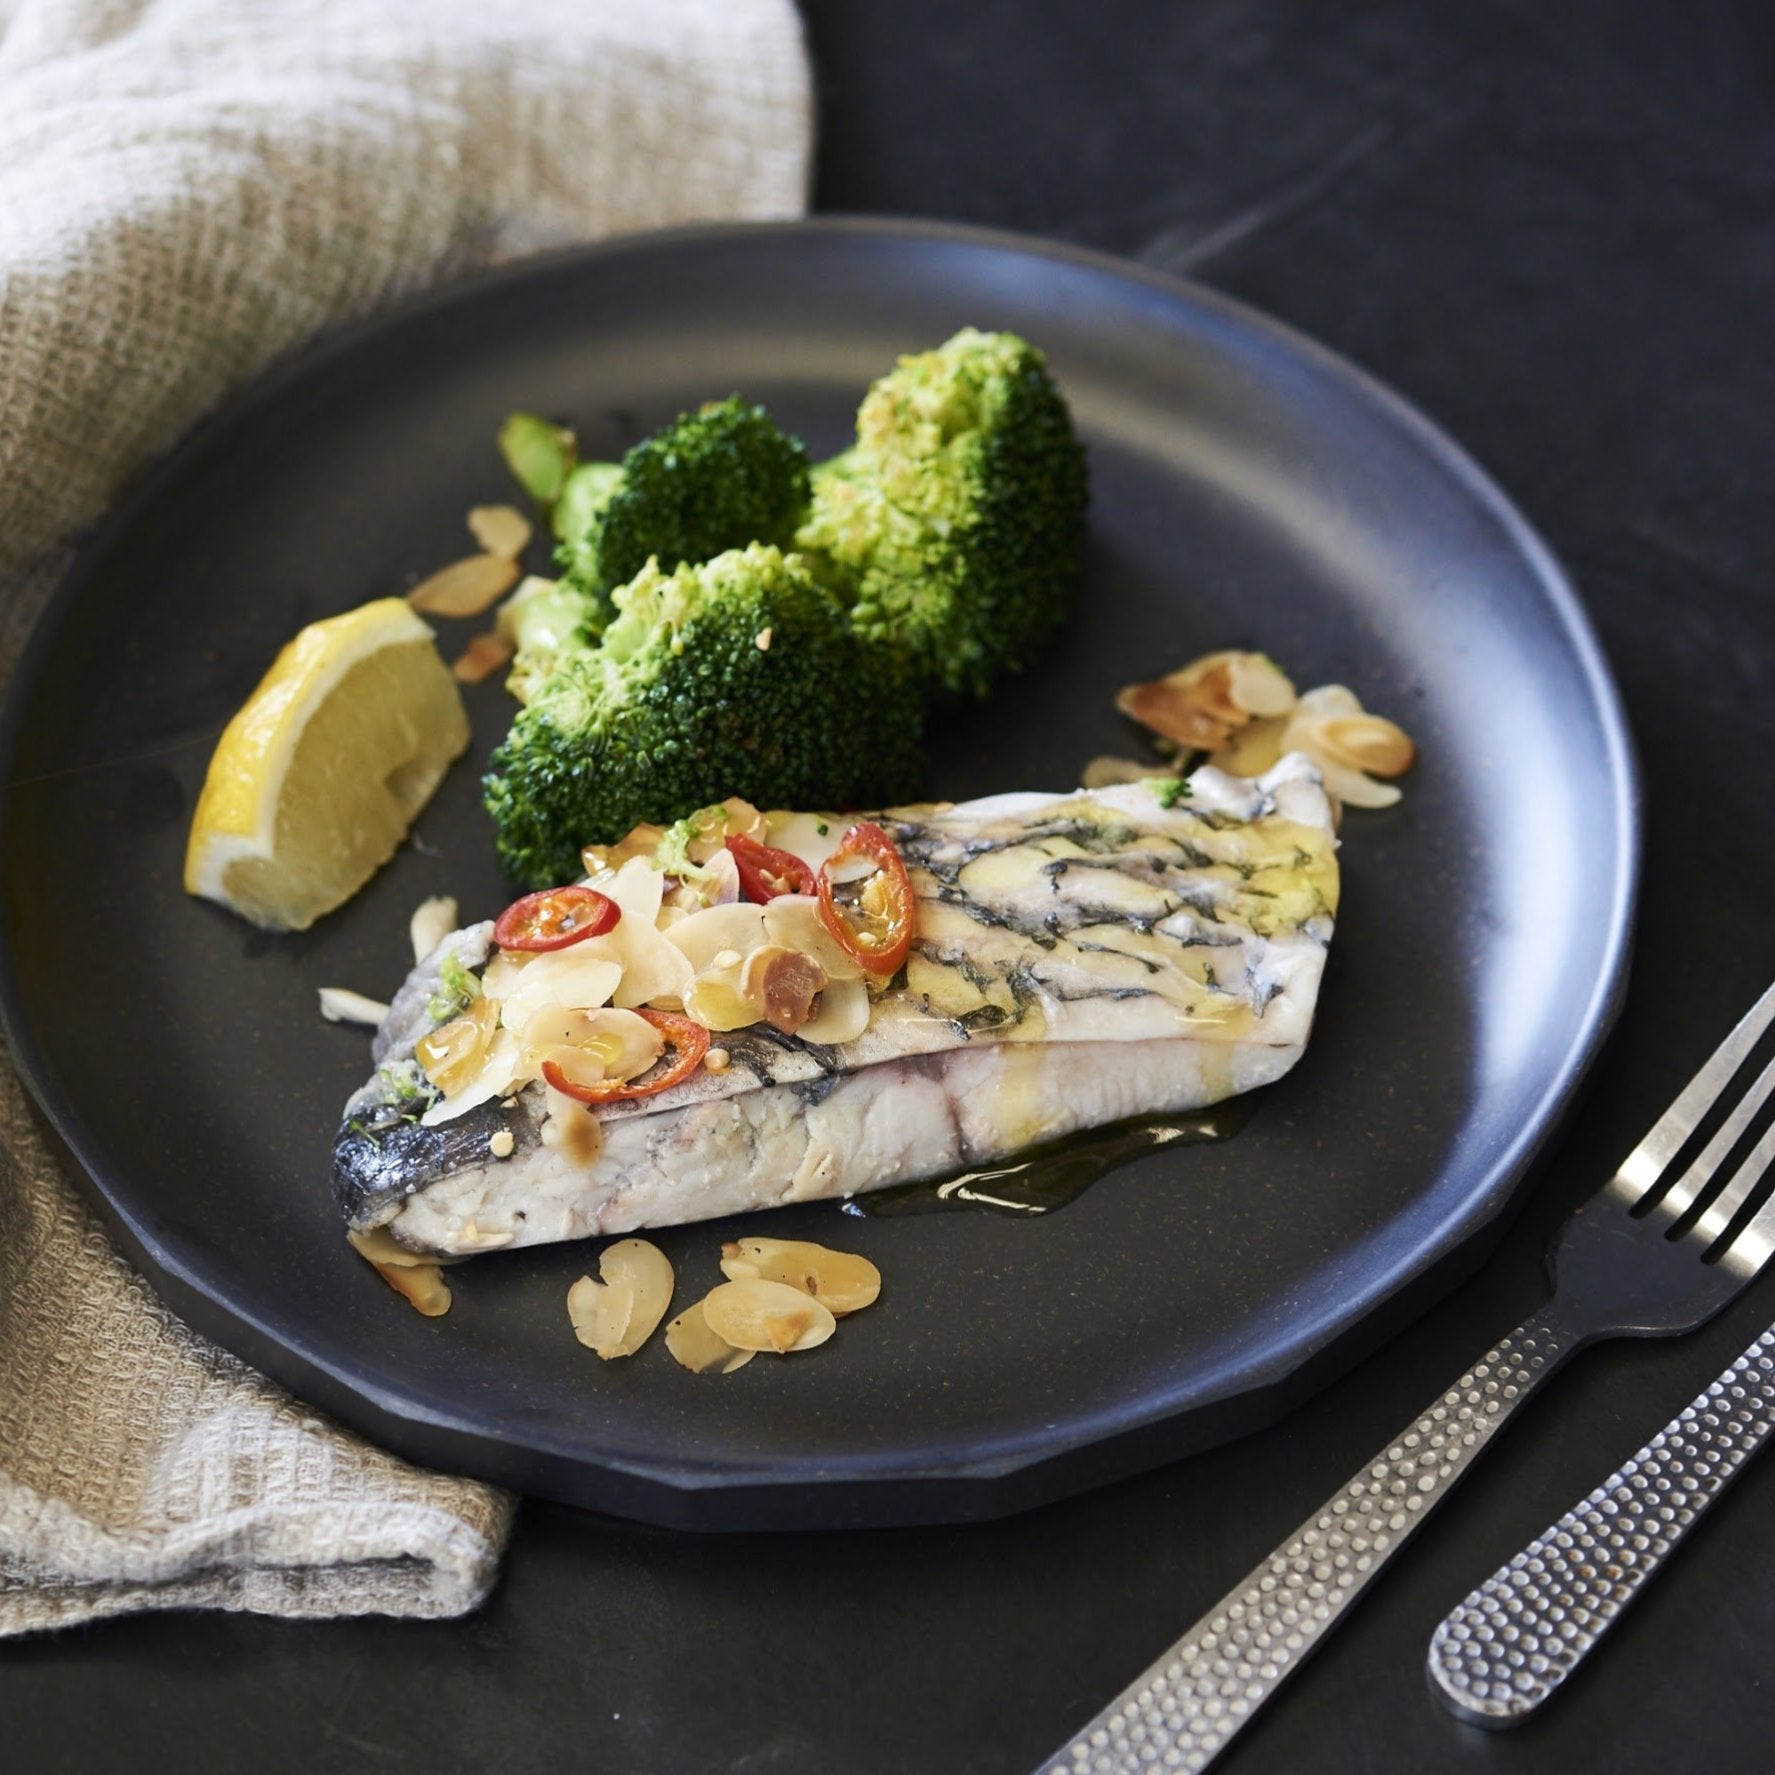 Baked Barramundi Fillet With Spicy Broccoli And Spicy Almonds